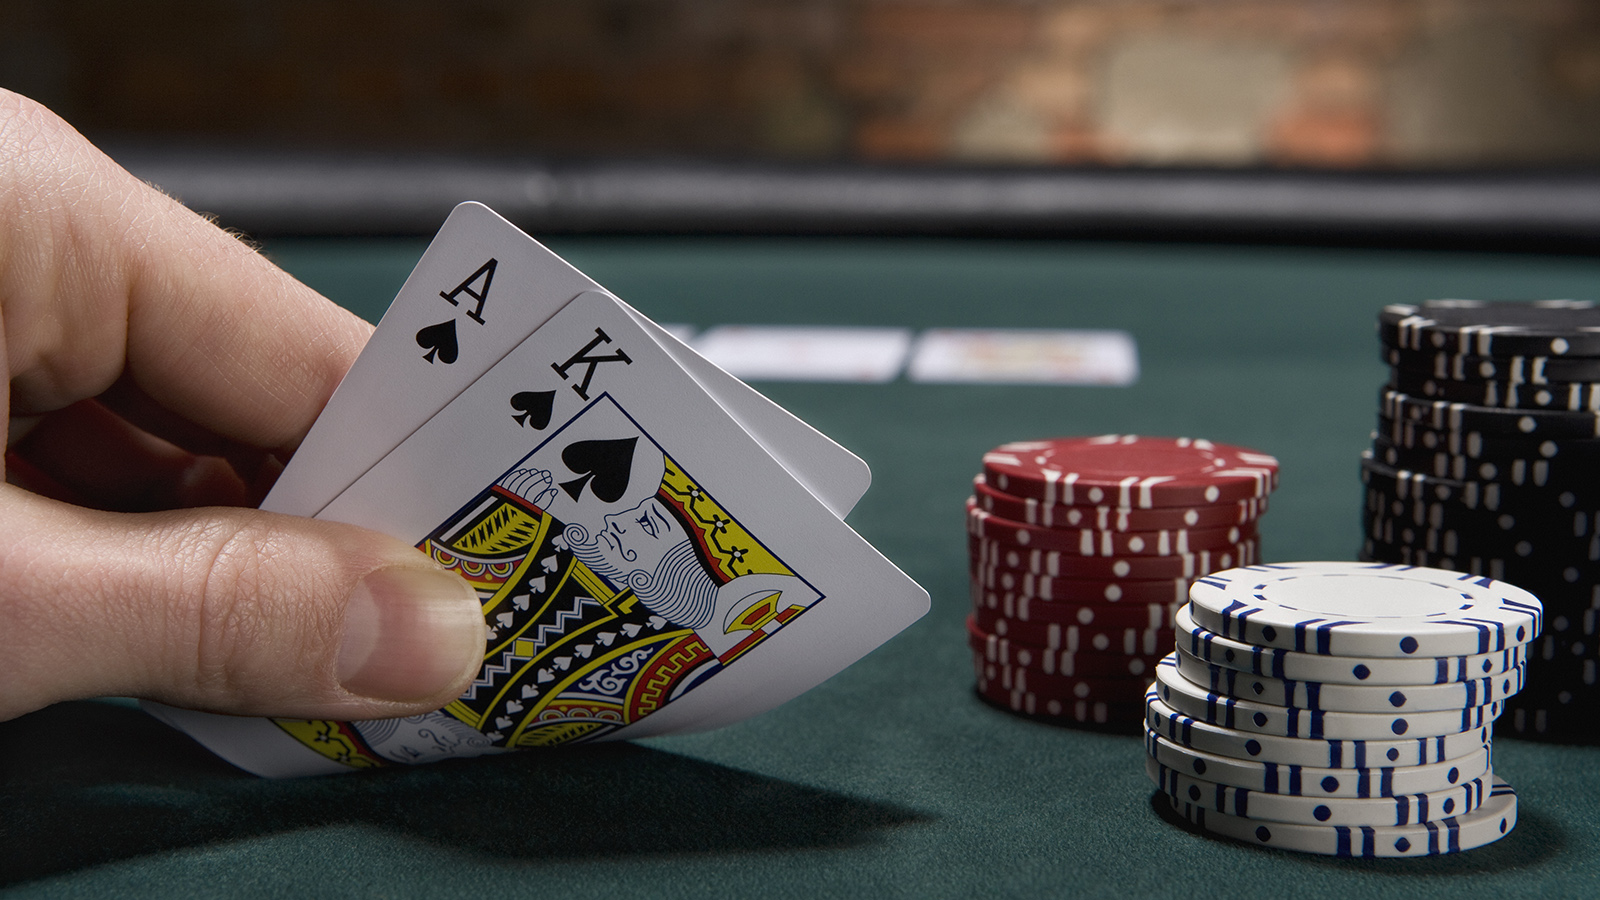 What You Should Know About Betting in Blackjack and Roulette